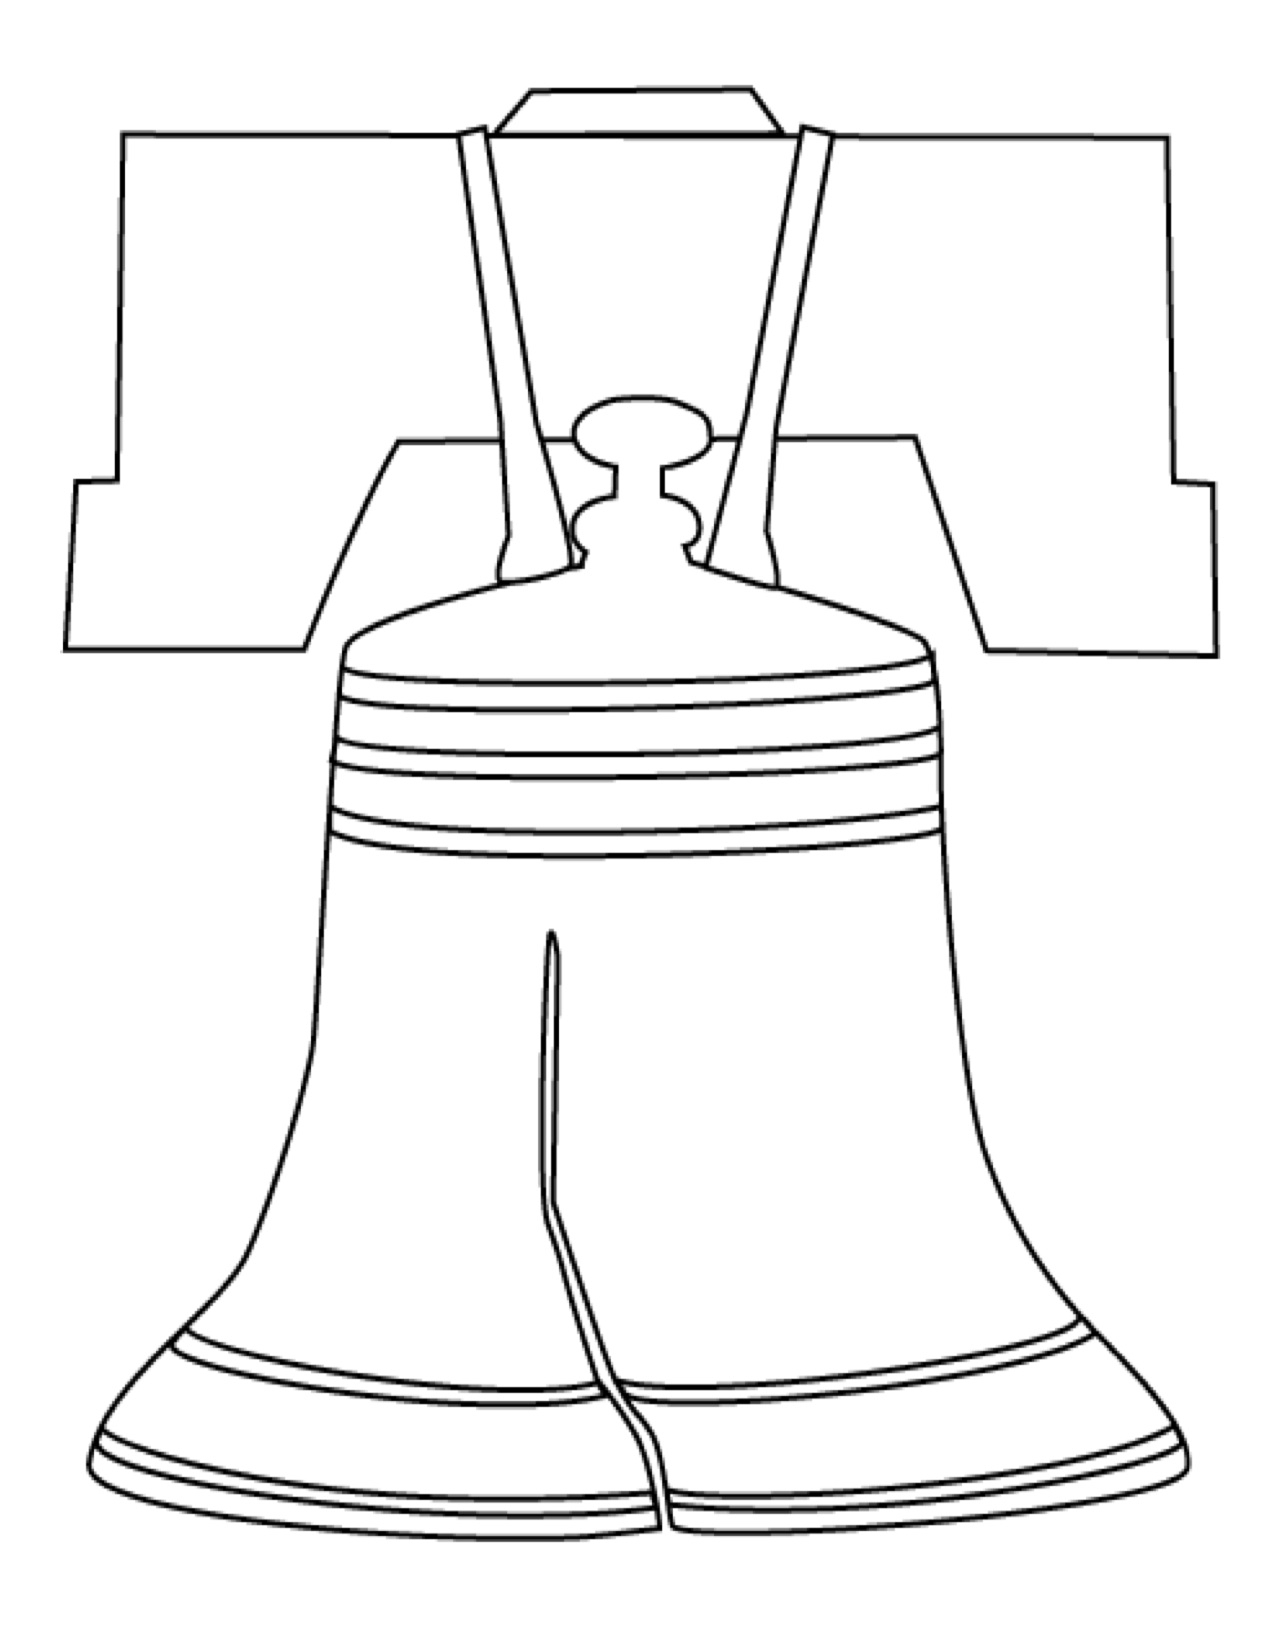 1275x1651 Drawing Of A Bell Fourth Of July Liberty Bell Craft Template